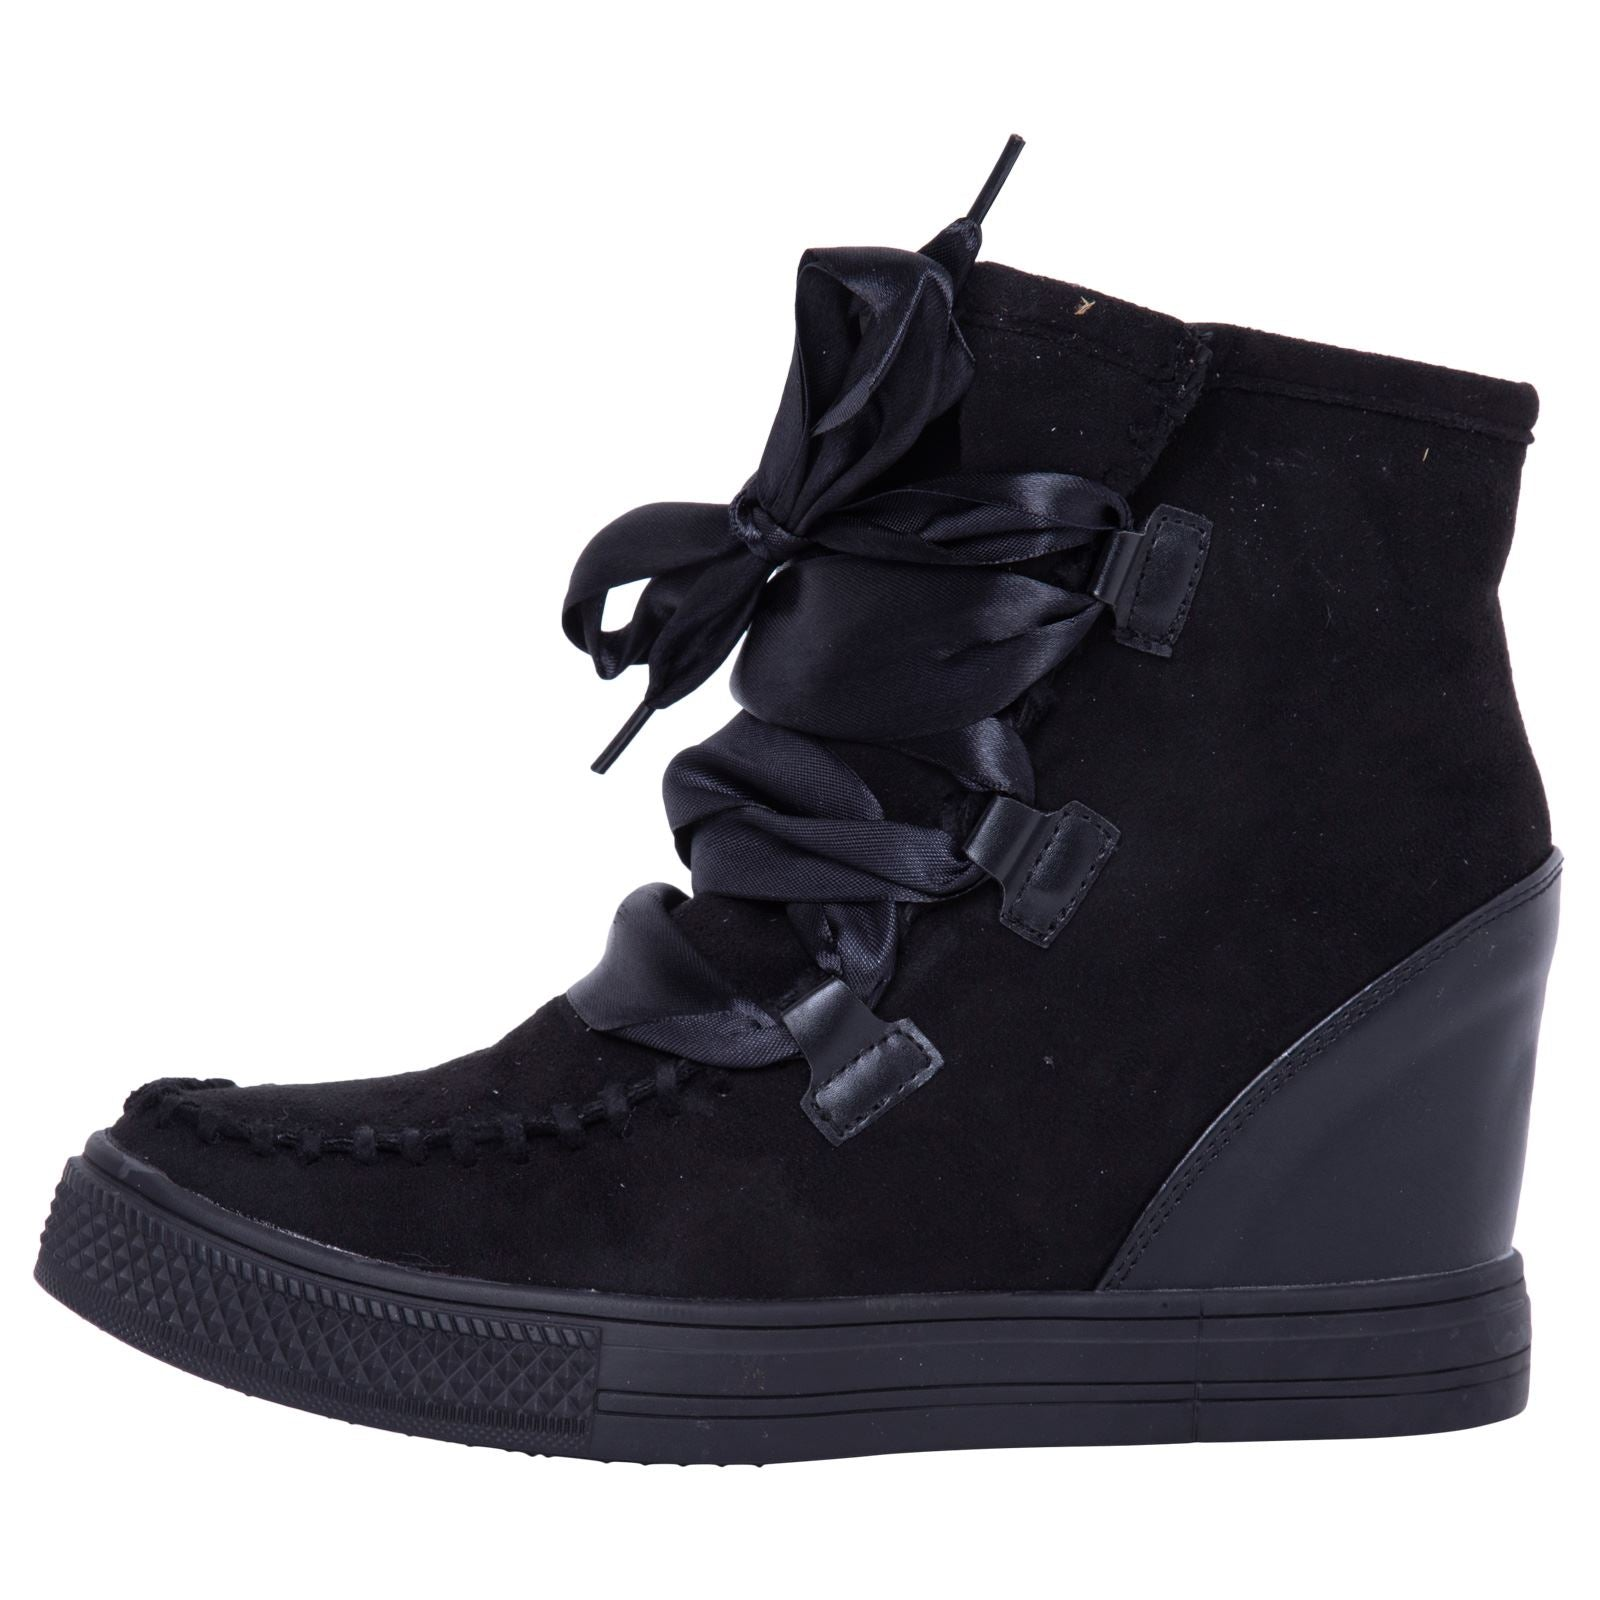 Kacee Stylish Wedge Trainers in Black With Ribbon - Feet First Fashion